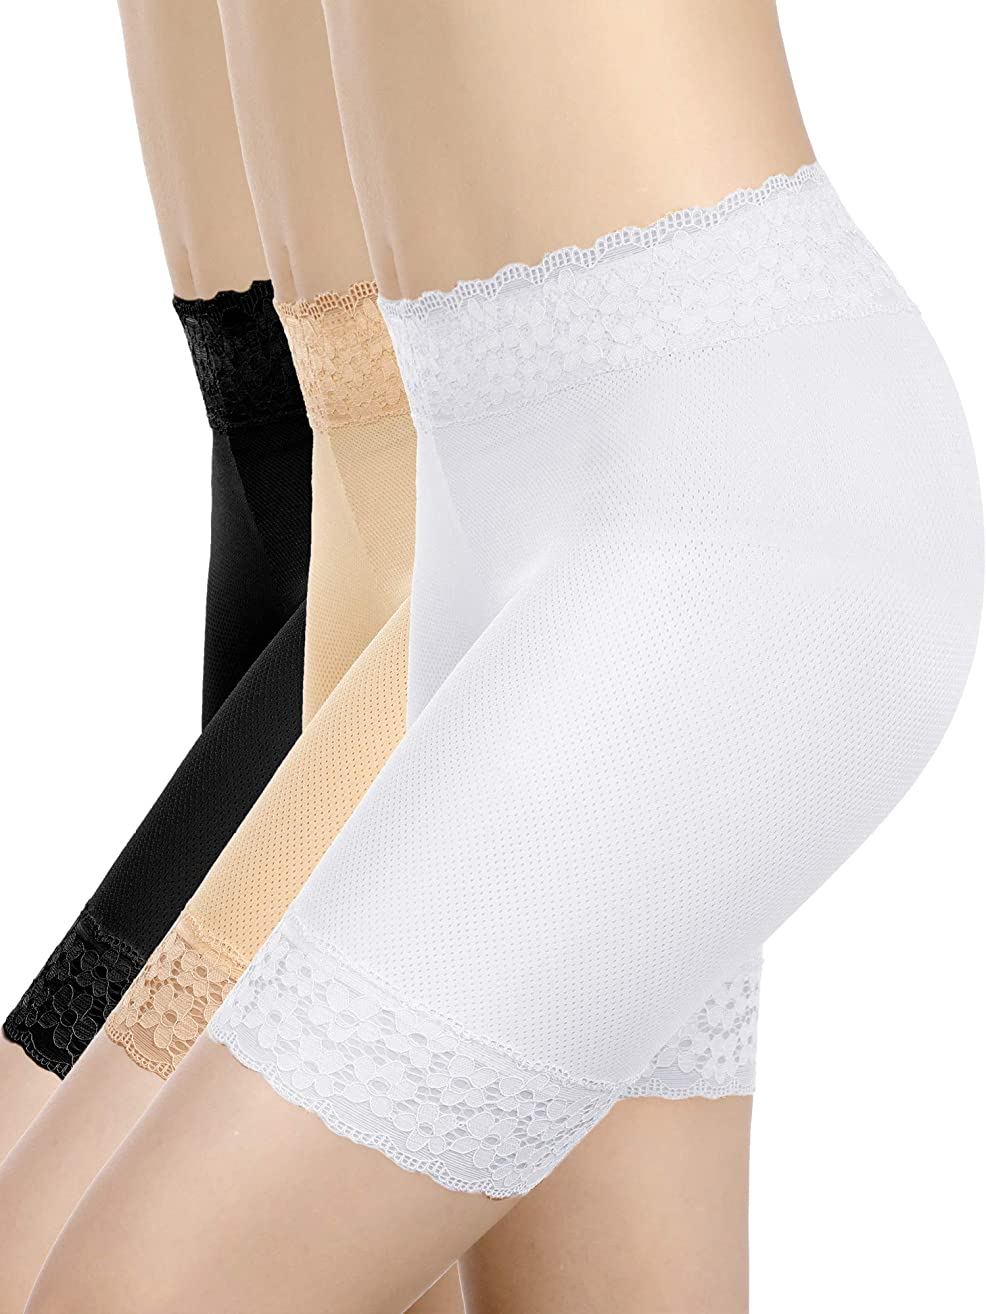 3 Pieces Lace Shorts Underwear Yoga Shorts Stretch Safety Leggings Undershorts for Women Girls